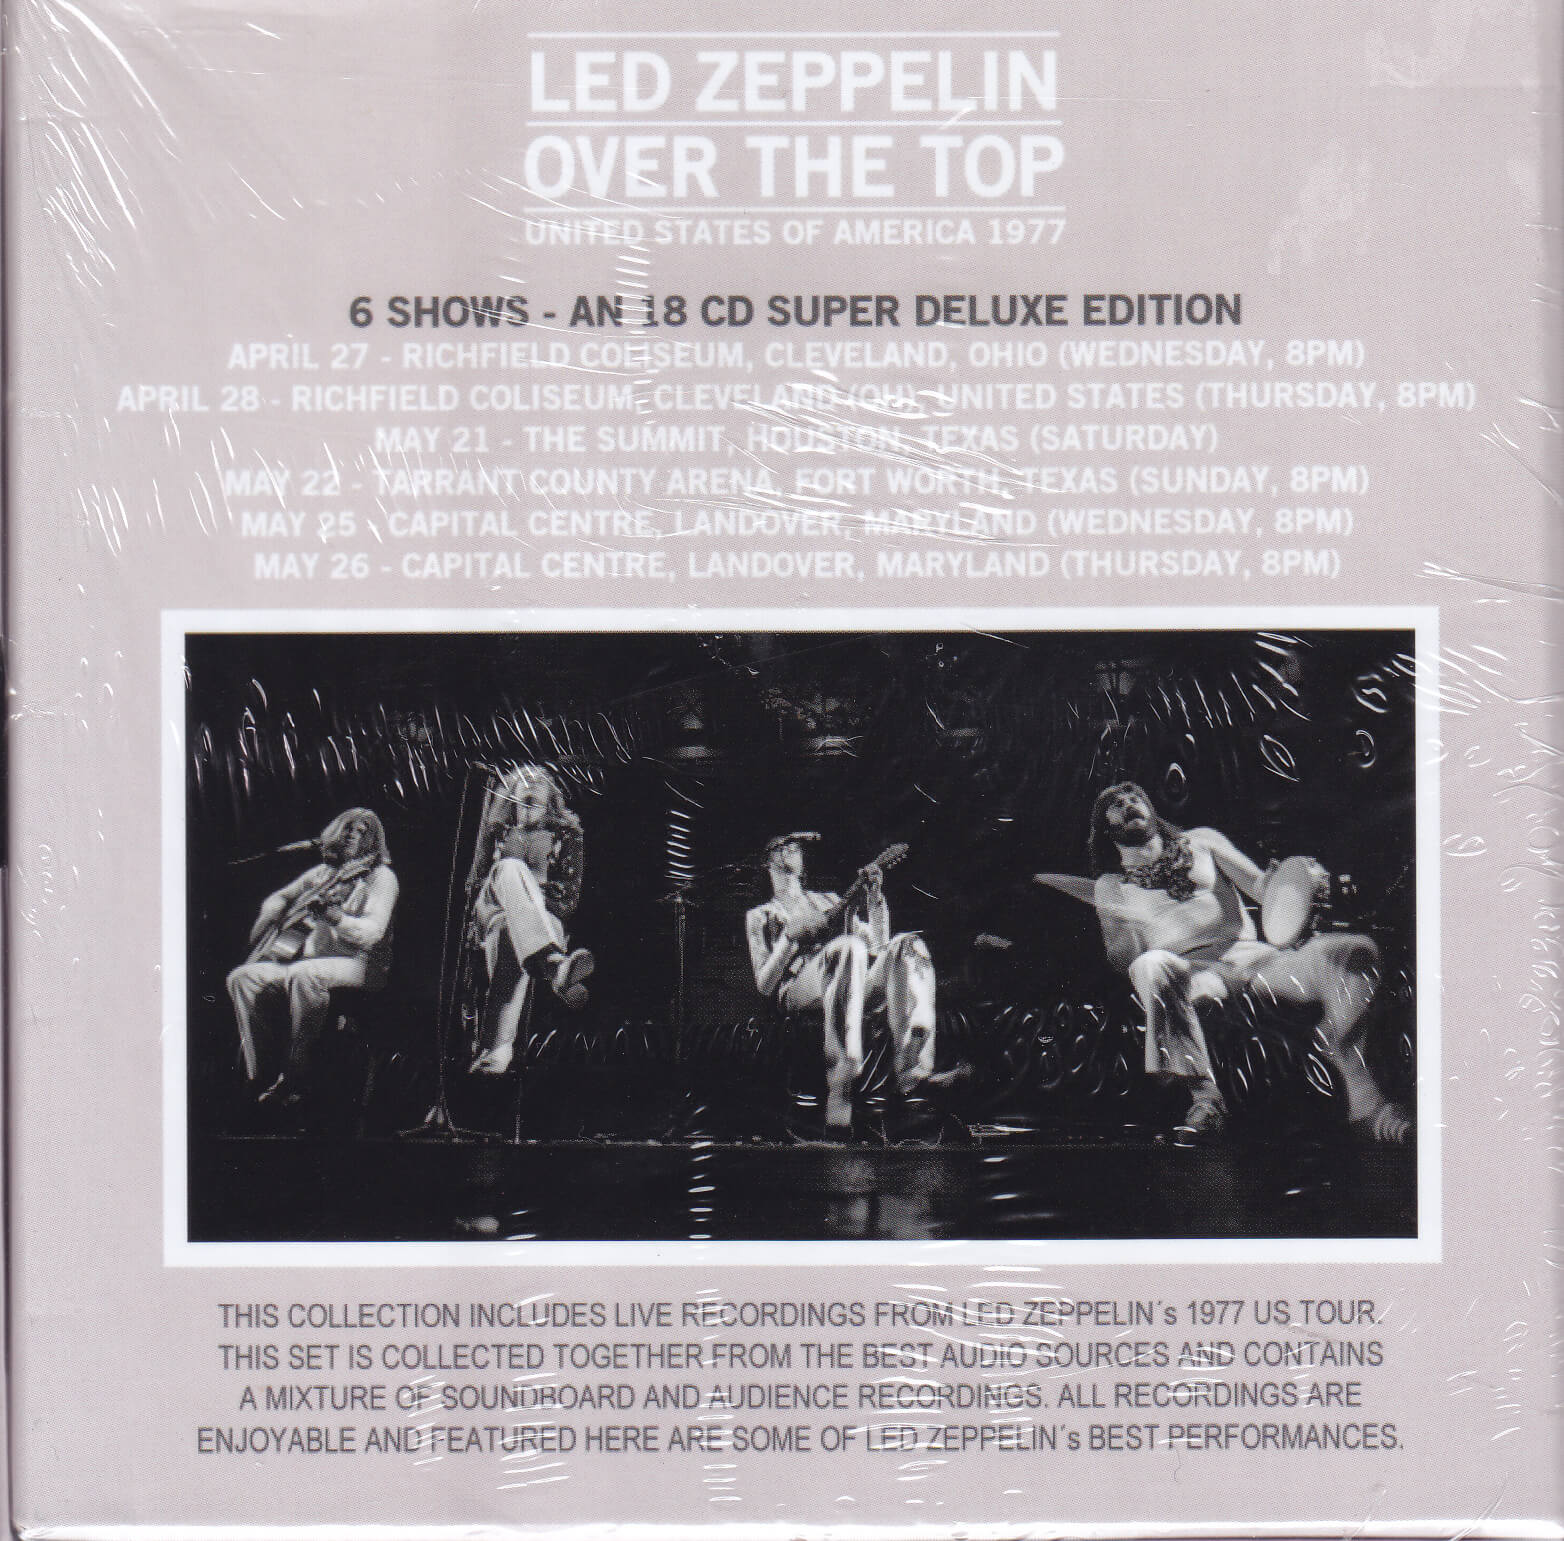 8998b392f6491 Led Zeppelin   Over The Top United States Of America 1977   18CD Box Set